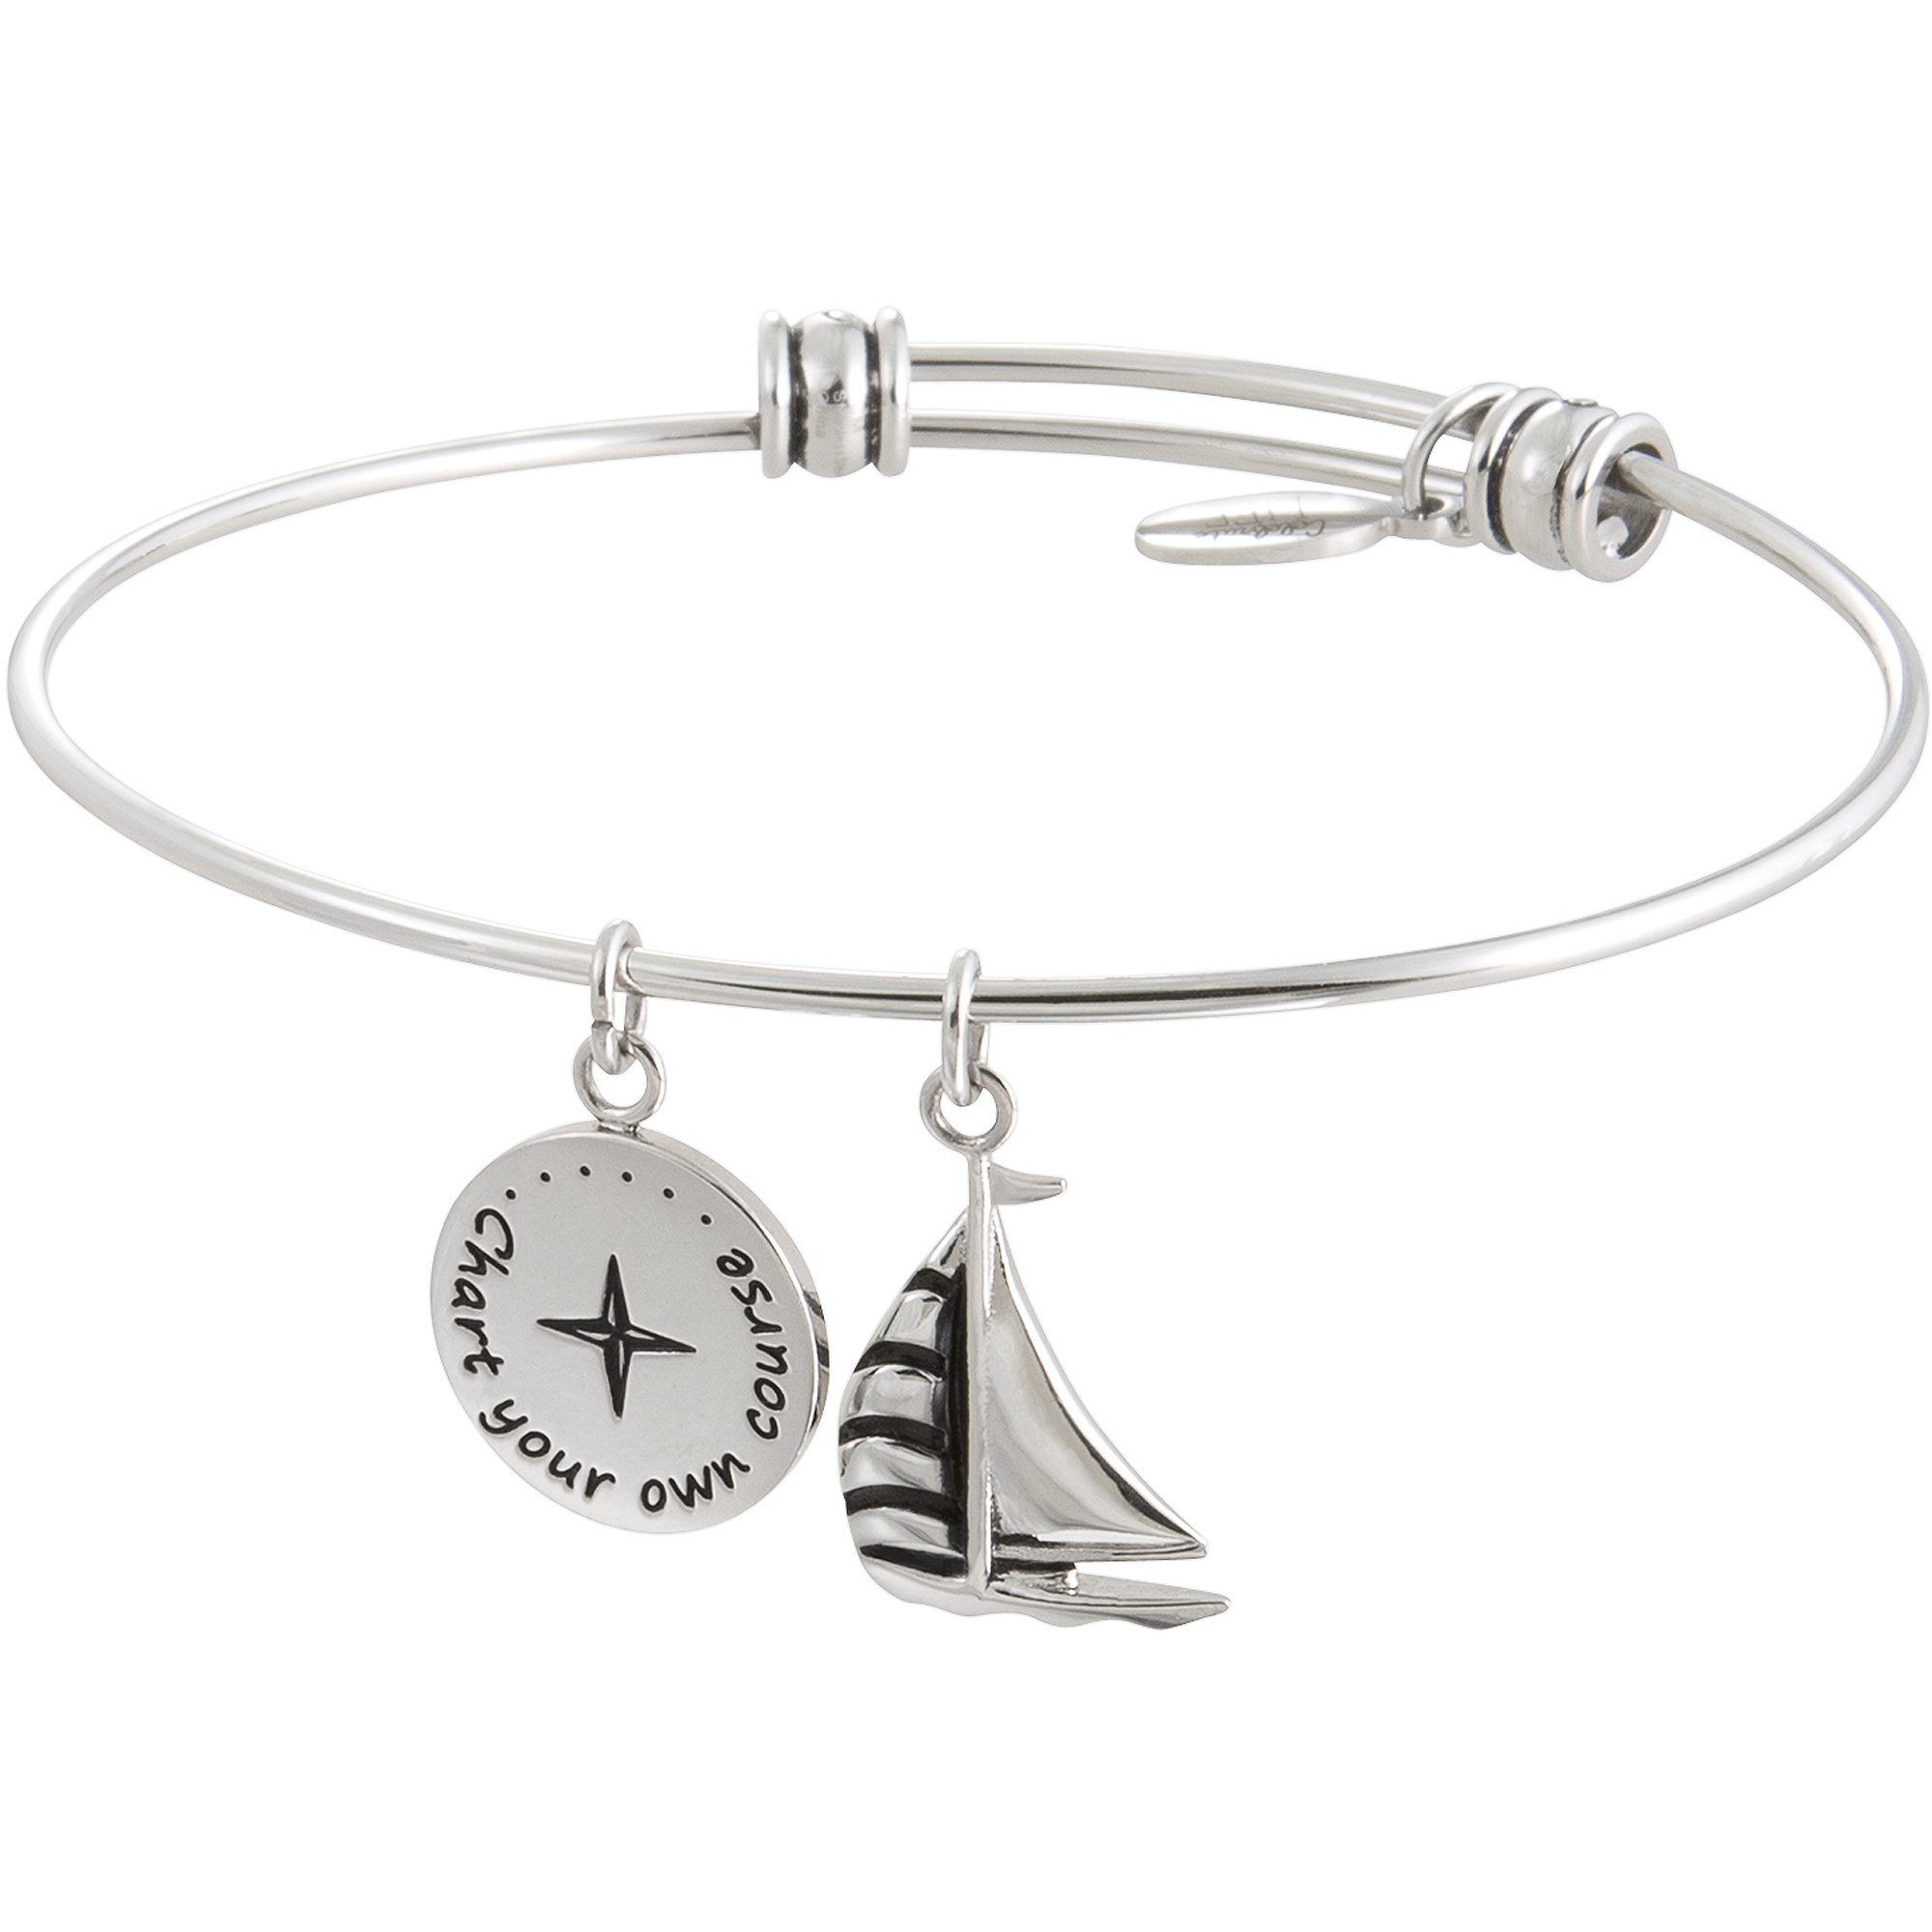 "Connections from Hallmark Stainless Steel ""Chart Your Own Course"" Multi-Charm Wire Bangle, 7.75"